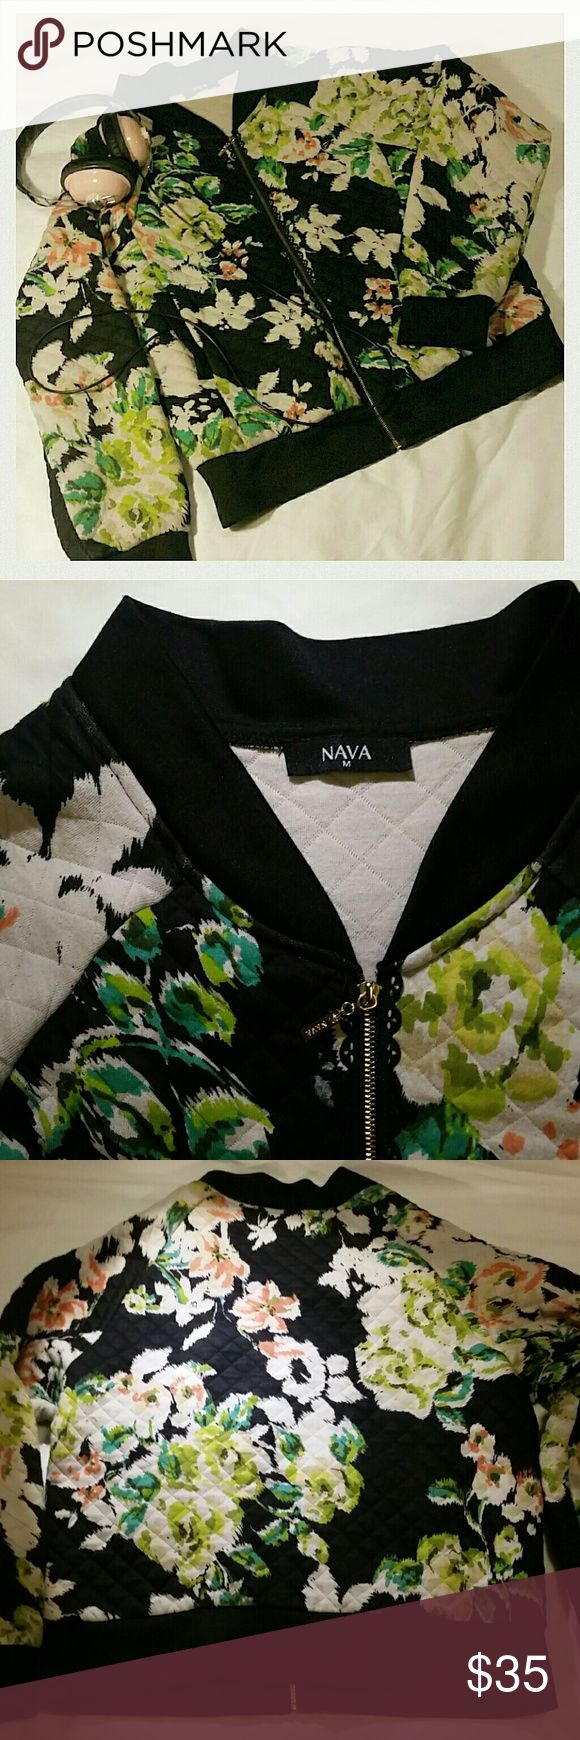 Cute floral zip up quilted hoody jacket Cute quilted type fabric with floral print, small cute black lace detail by zipper (see 2nd picture) Jackets & Coats